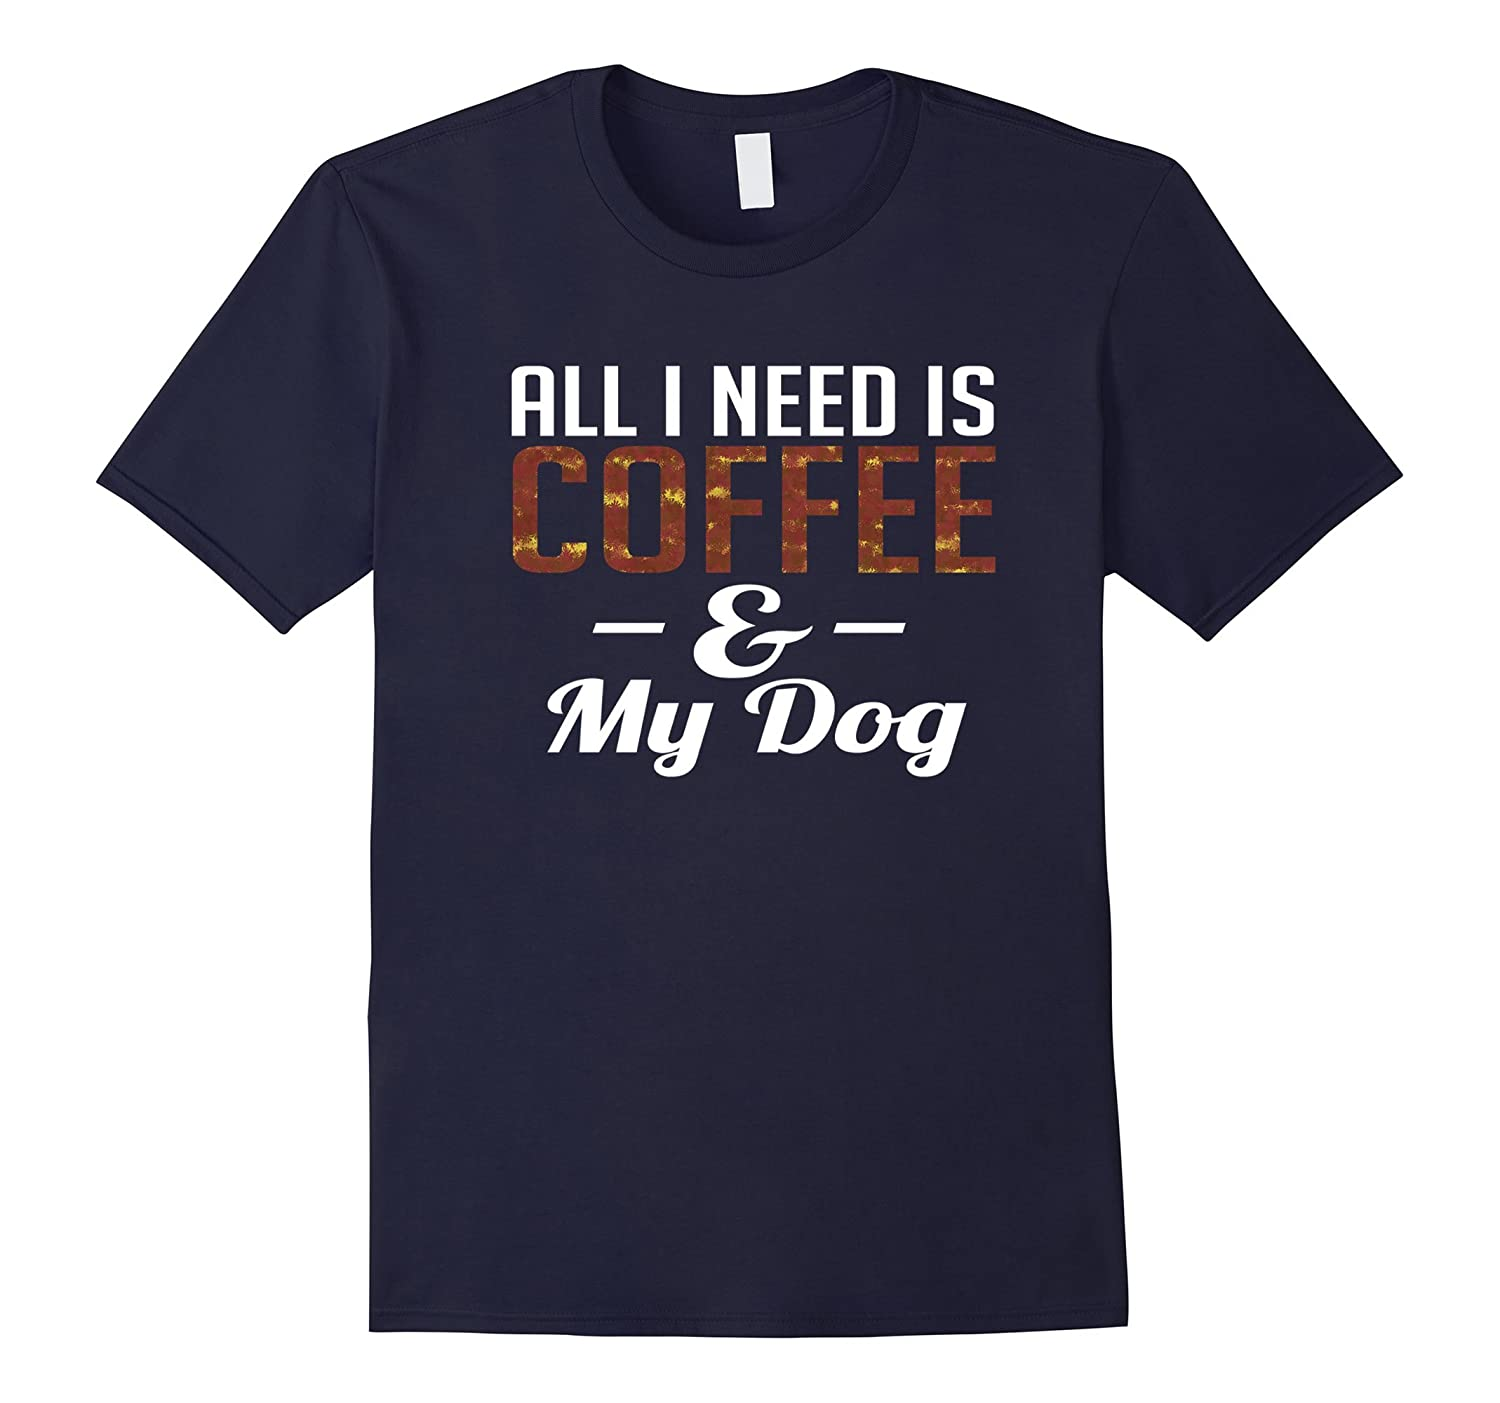 Aw Cute Dog Shirts All I Need Is Coffee & My Dog Funny Tee-BN